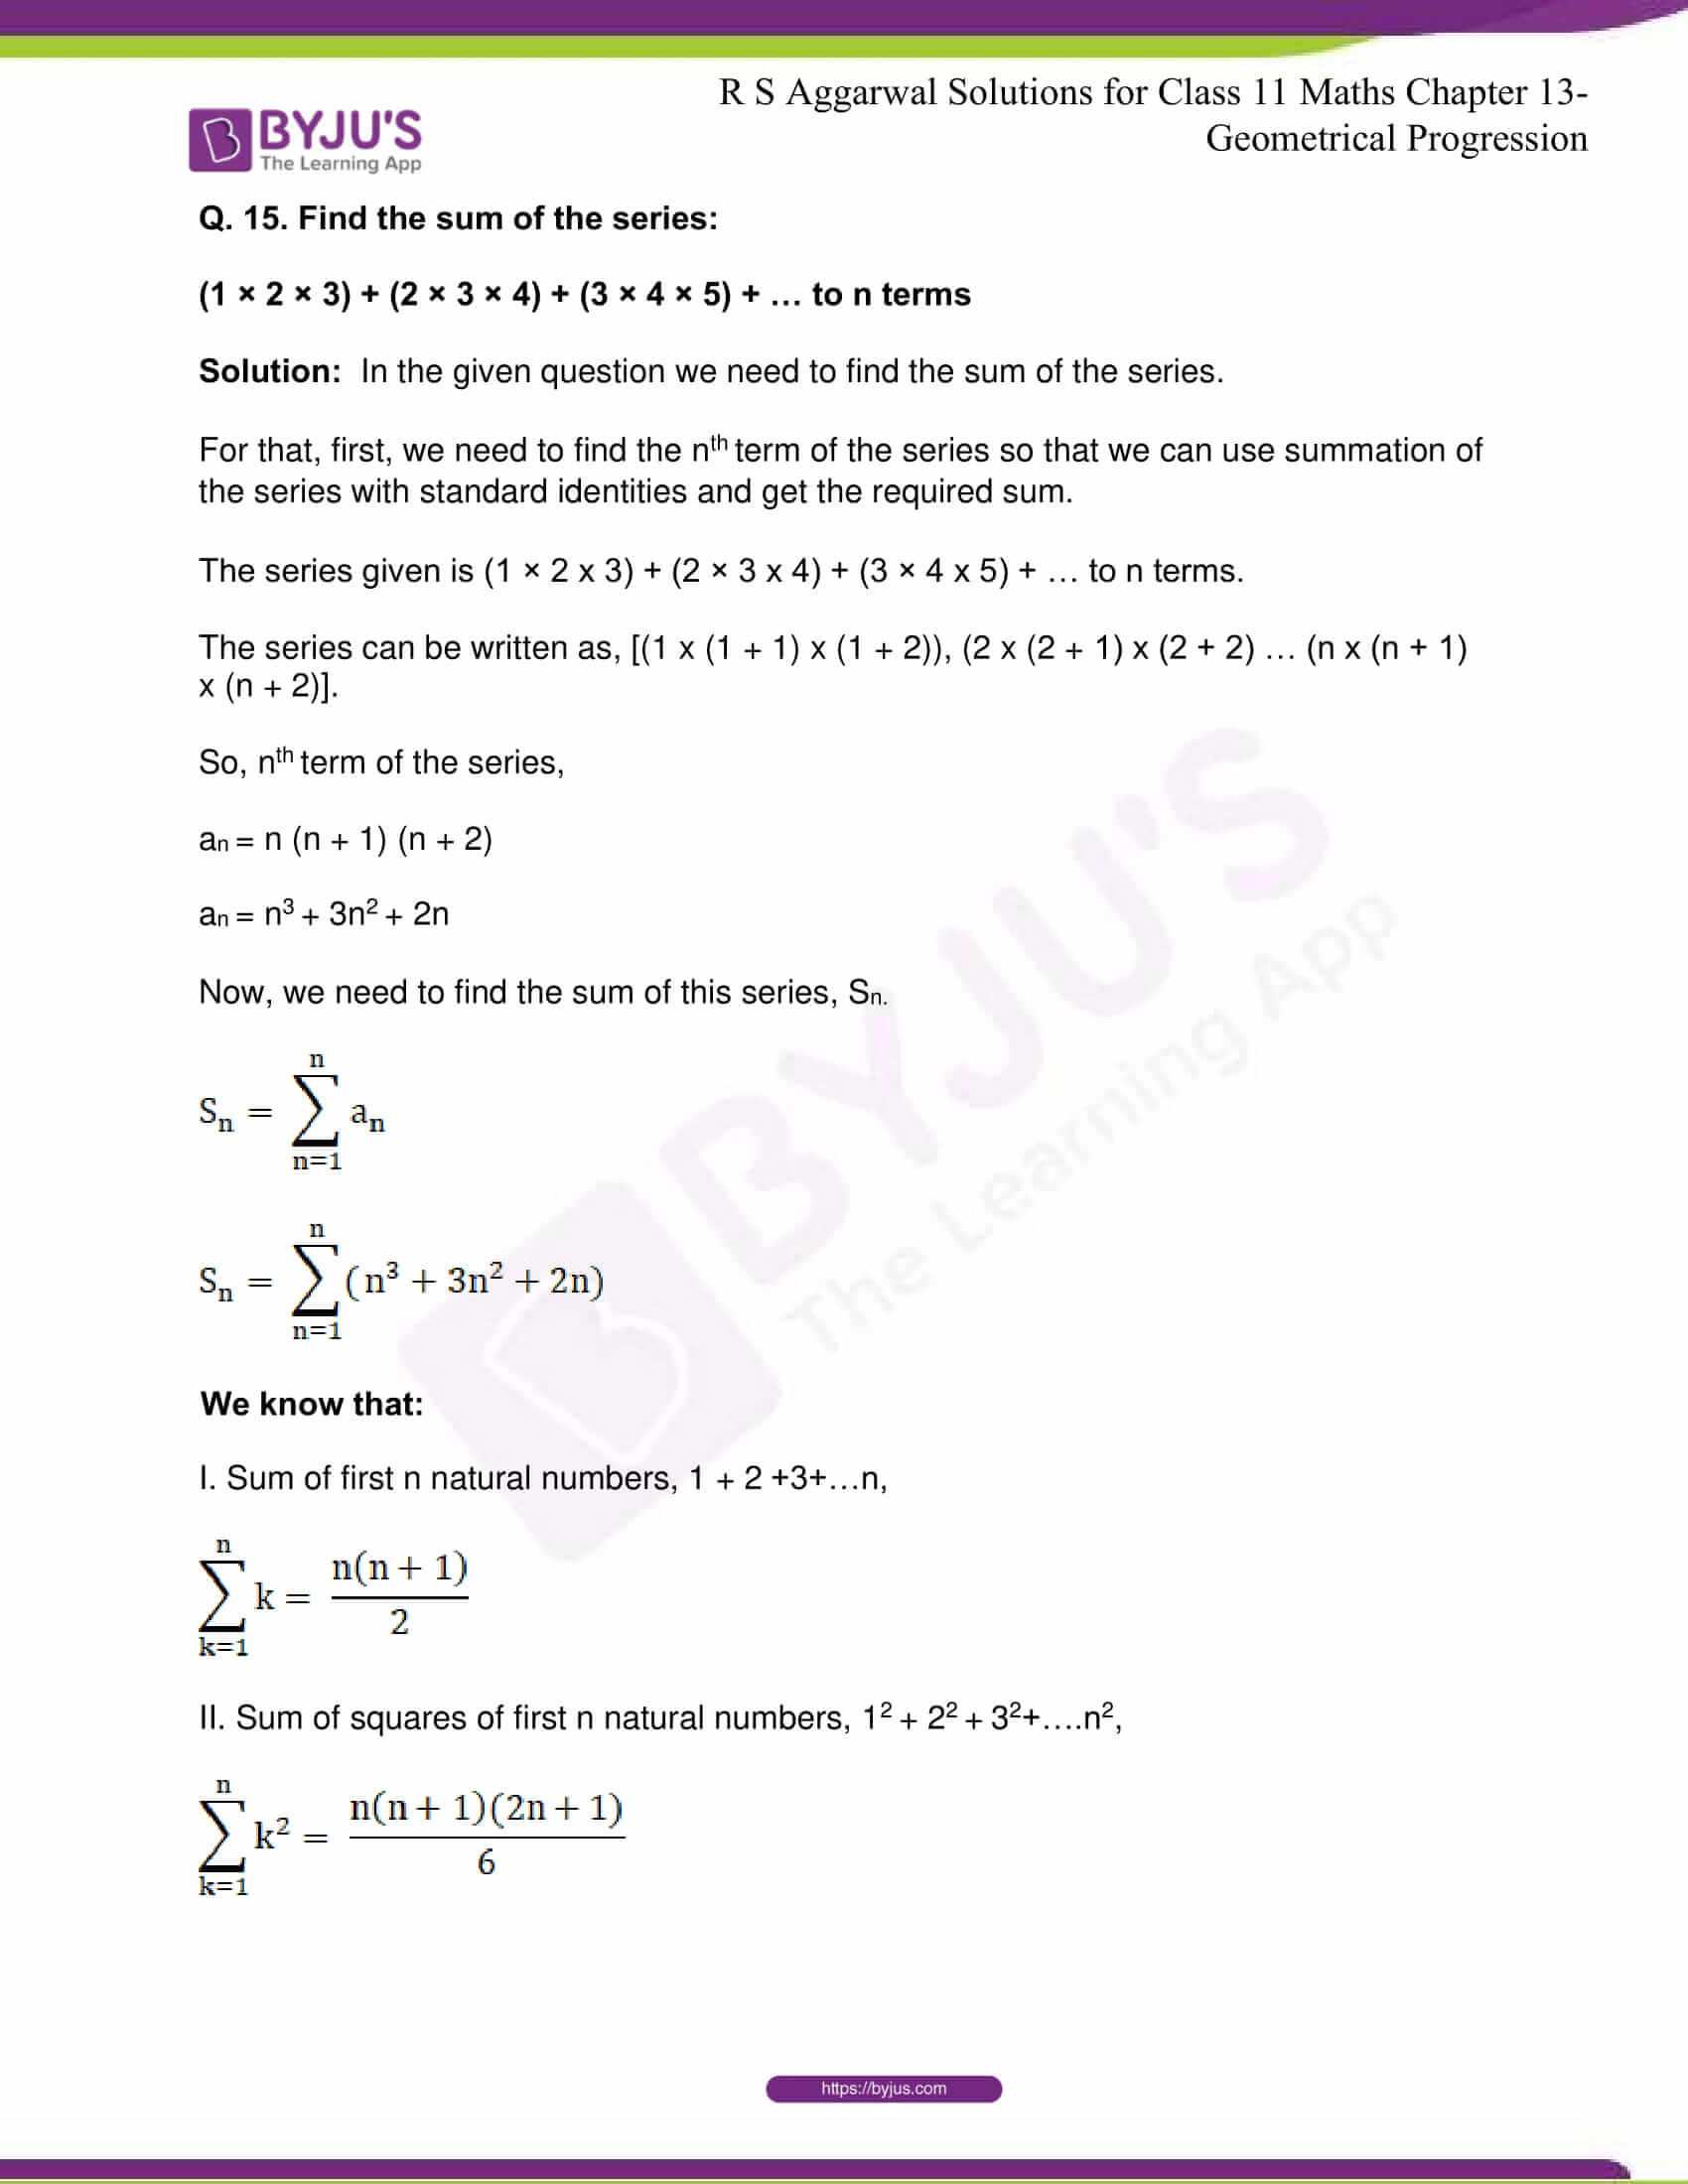 RS Aggarwal Sol Class 11 Maths Chapter 13